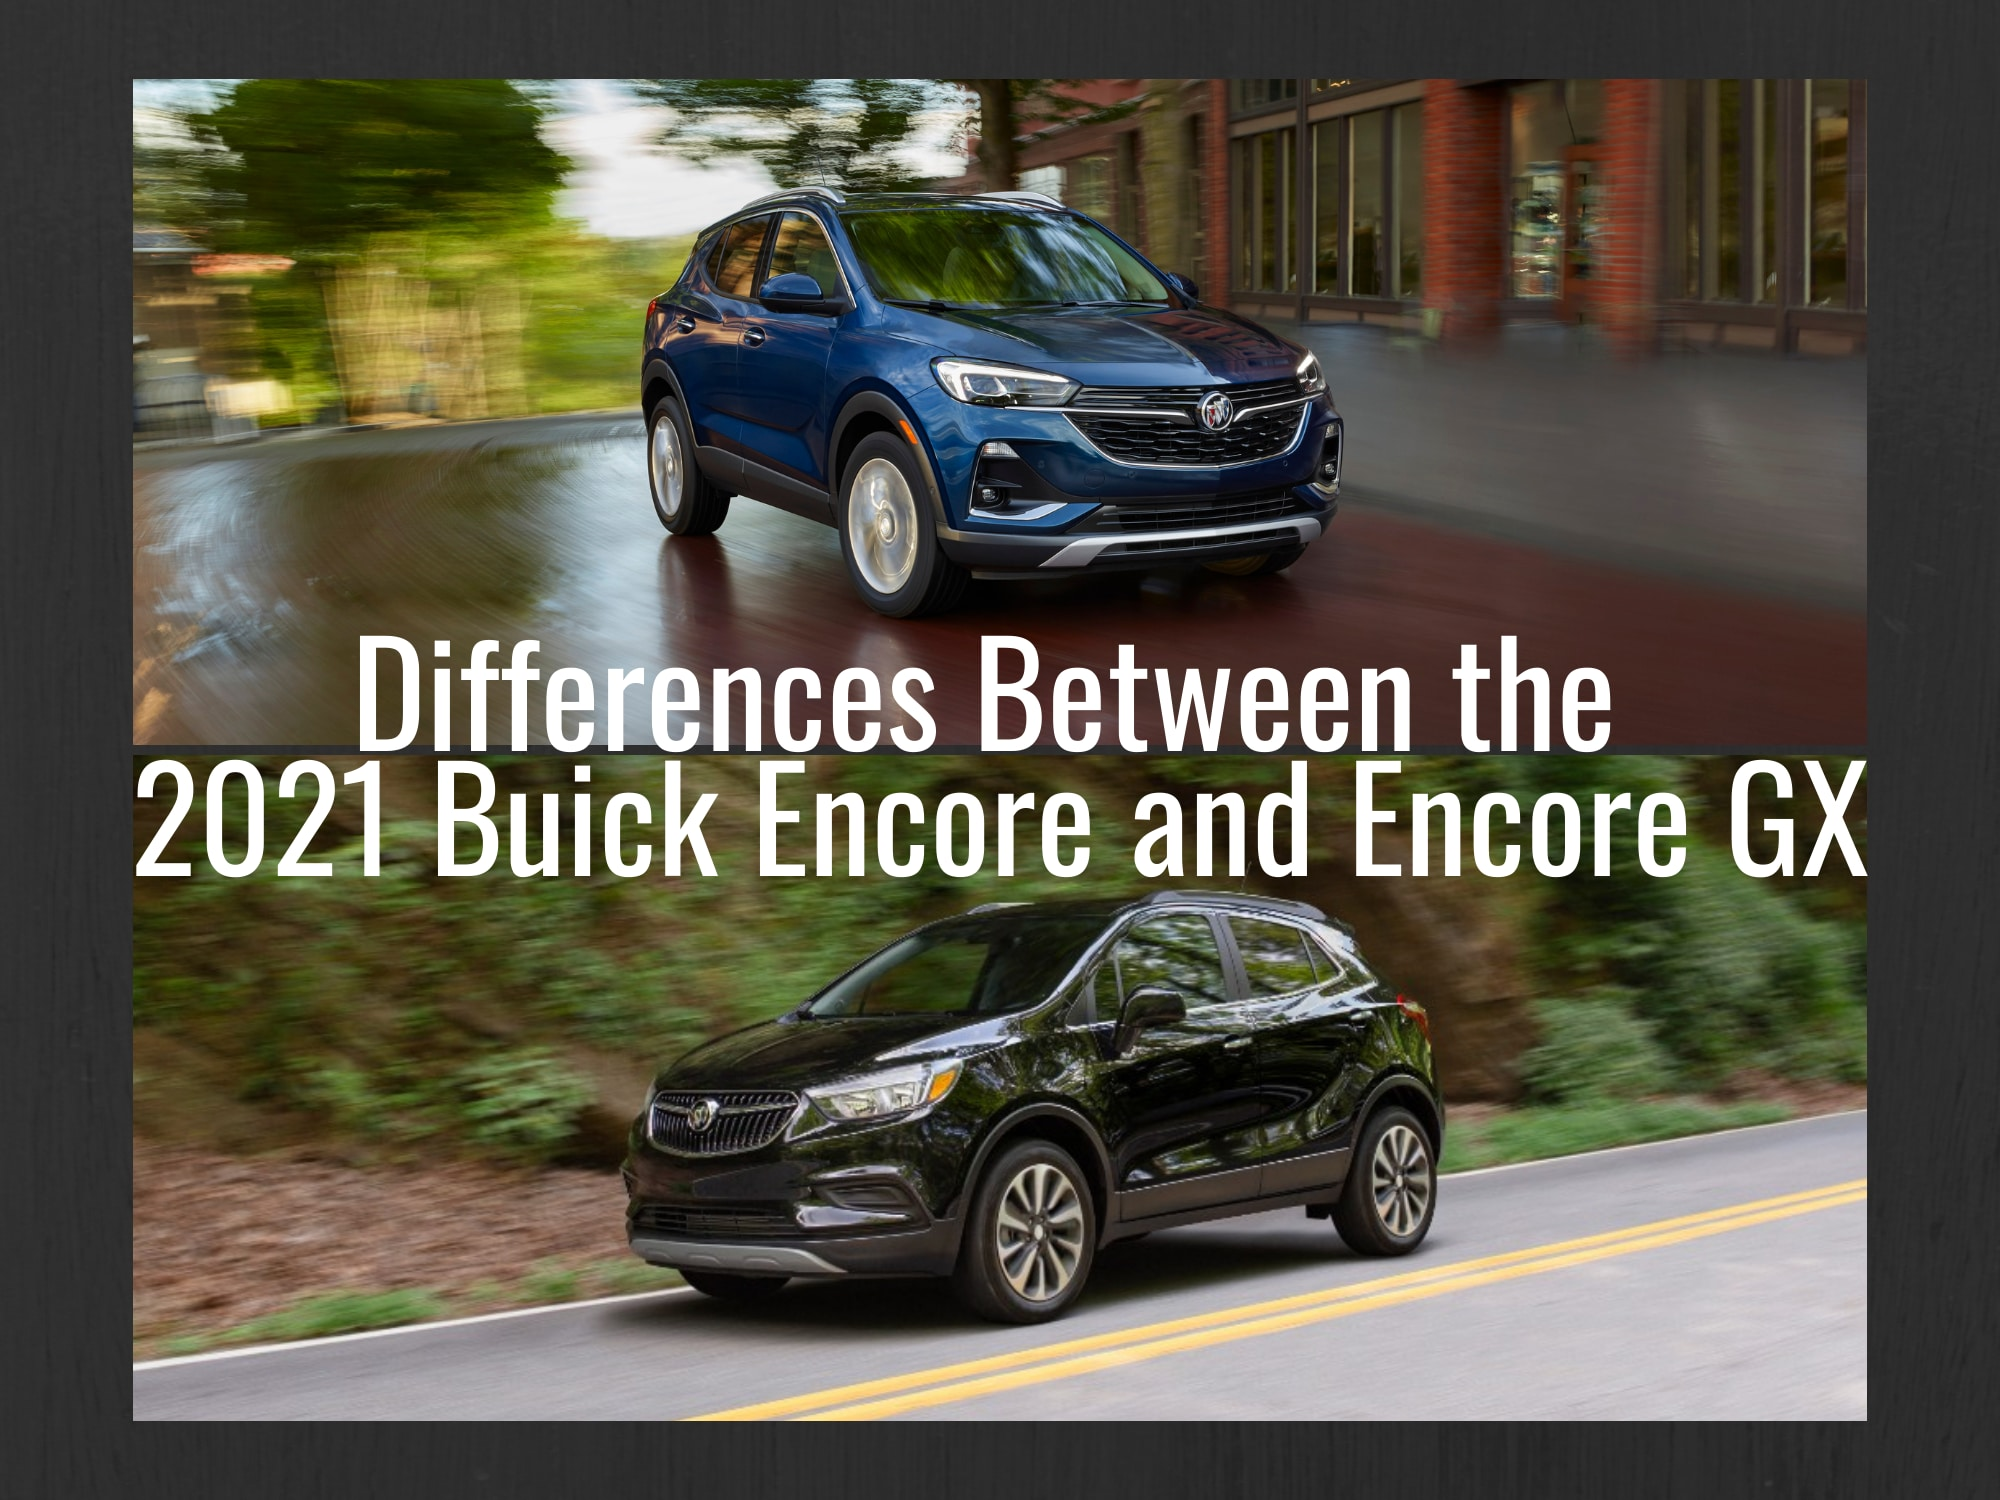 Two Photos: Top: 2021 Buick Encore in Blue Front 3/4 View, Bottom:Front 3/4 View of 2021 Buick Encore in Black